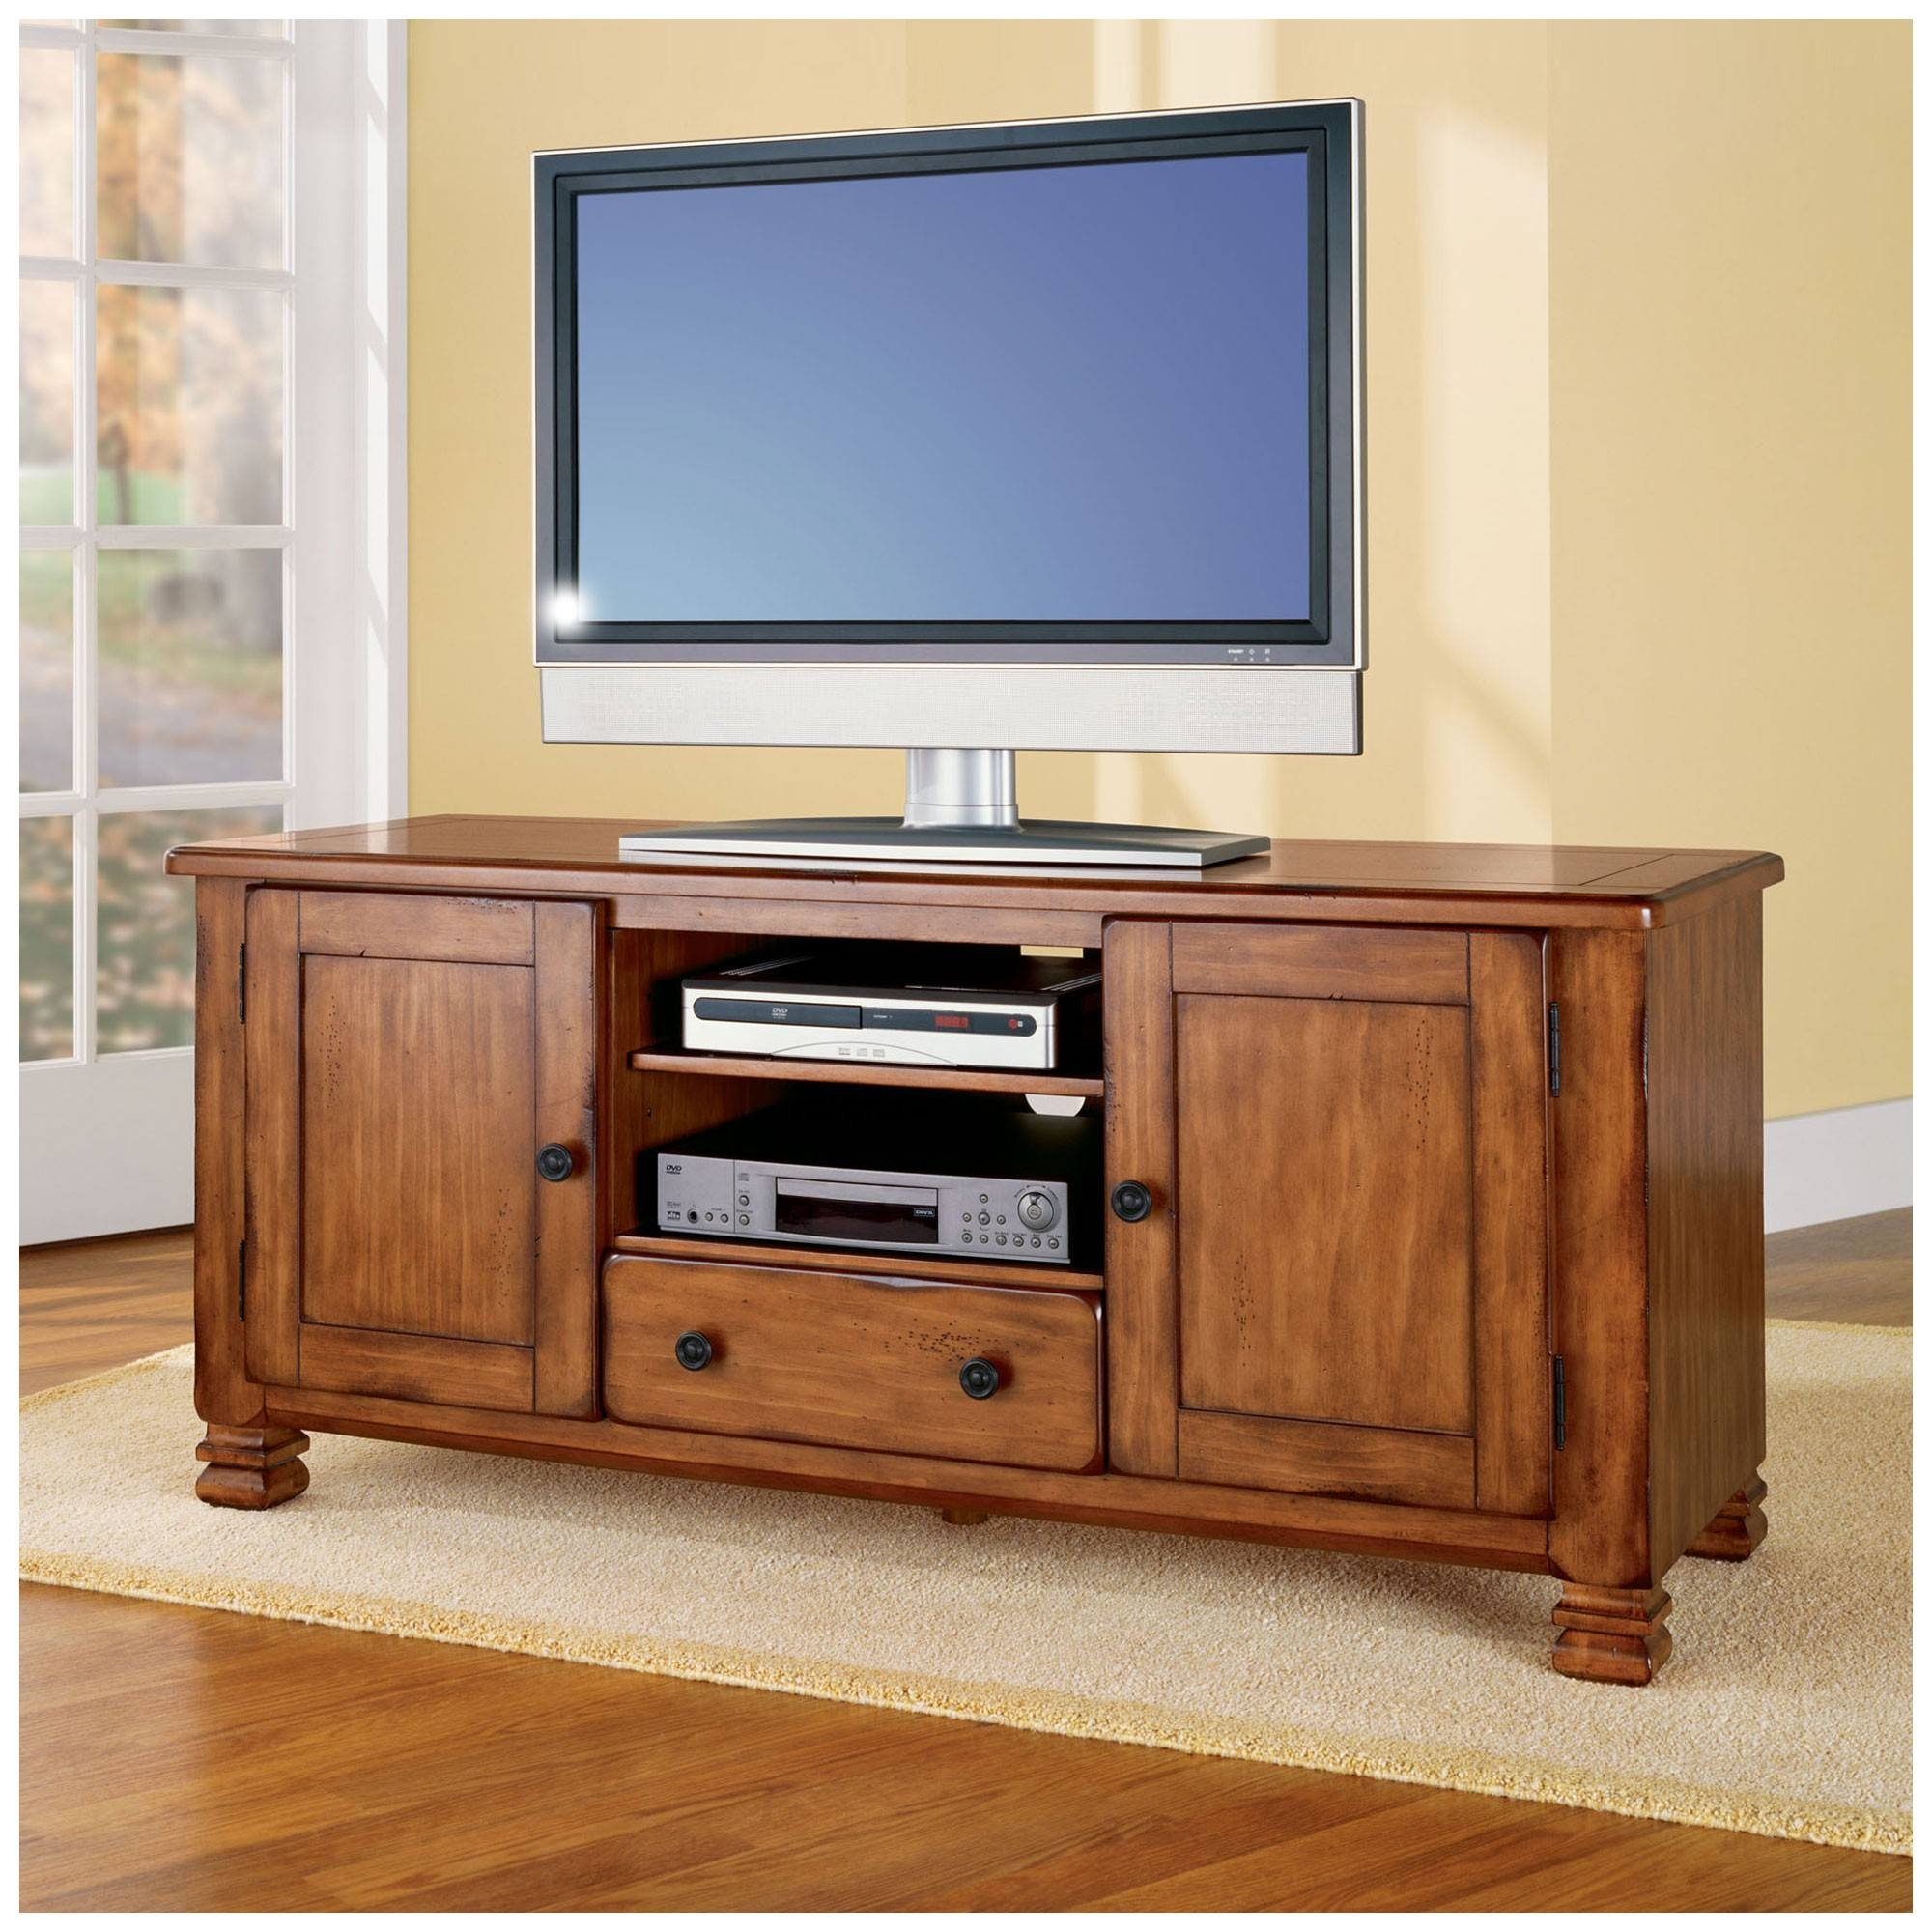 Design Cherry Wood Tv Stand Ideas #17098 Within Cherry Wood Tv Stands (View 9 of 15)